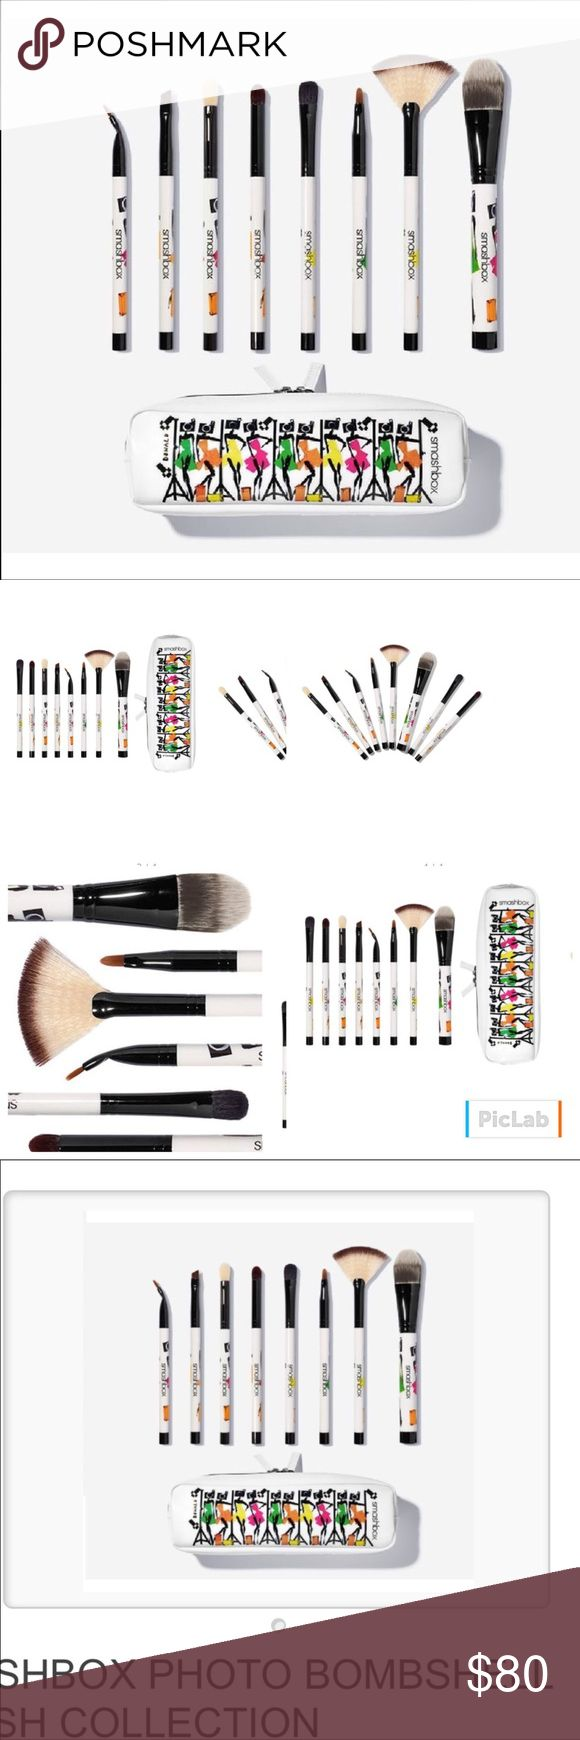 🌸🆕Smashbox Photo Bombshell Brush Set🌸 Swipe, sweep, line, define and blend your way to photo-ready perfection with this set of 8 limited-edition brushes designed by Instagram star artist Donald Robertson! (A $175 value!) Includes: Foundation Brush #13, Fan Brush #22, Angled Brow Brush #12, Lip Brush #6, Matte Shadow Brush, Shadow Brush, Definer Brush #15, Arced Liner Brush #21 and zippered bag shown. Sold out online! Sephora Makeup Brushes & Tools